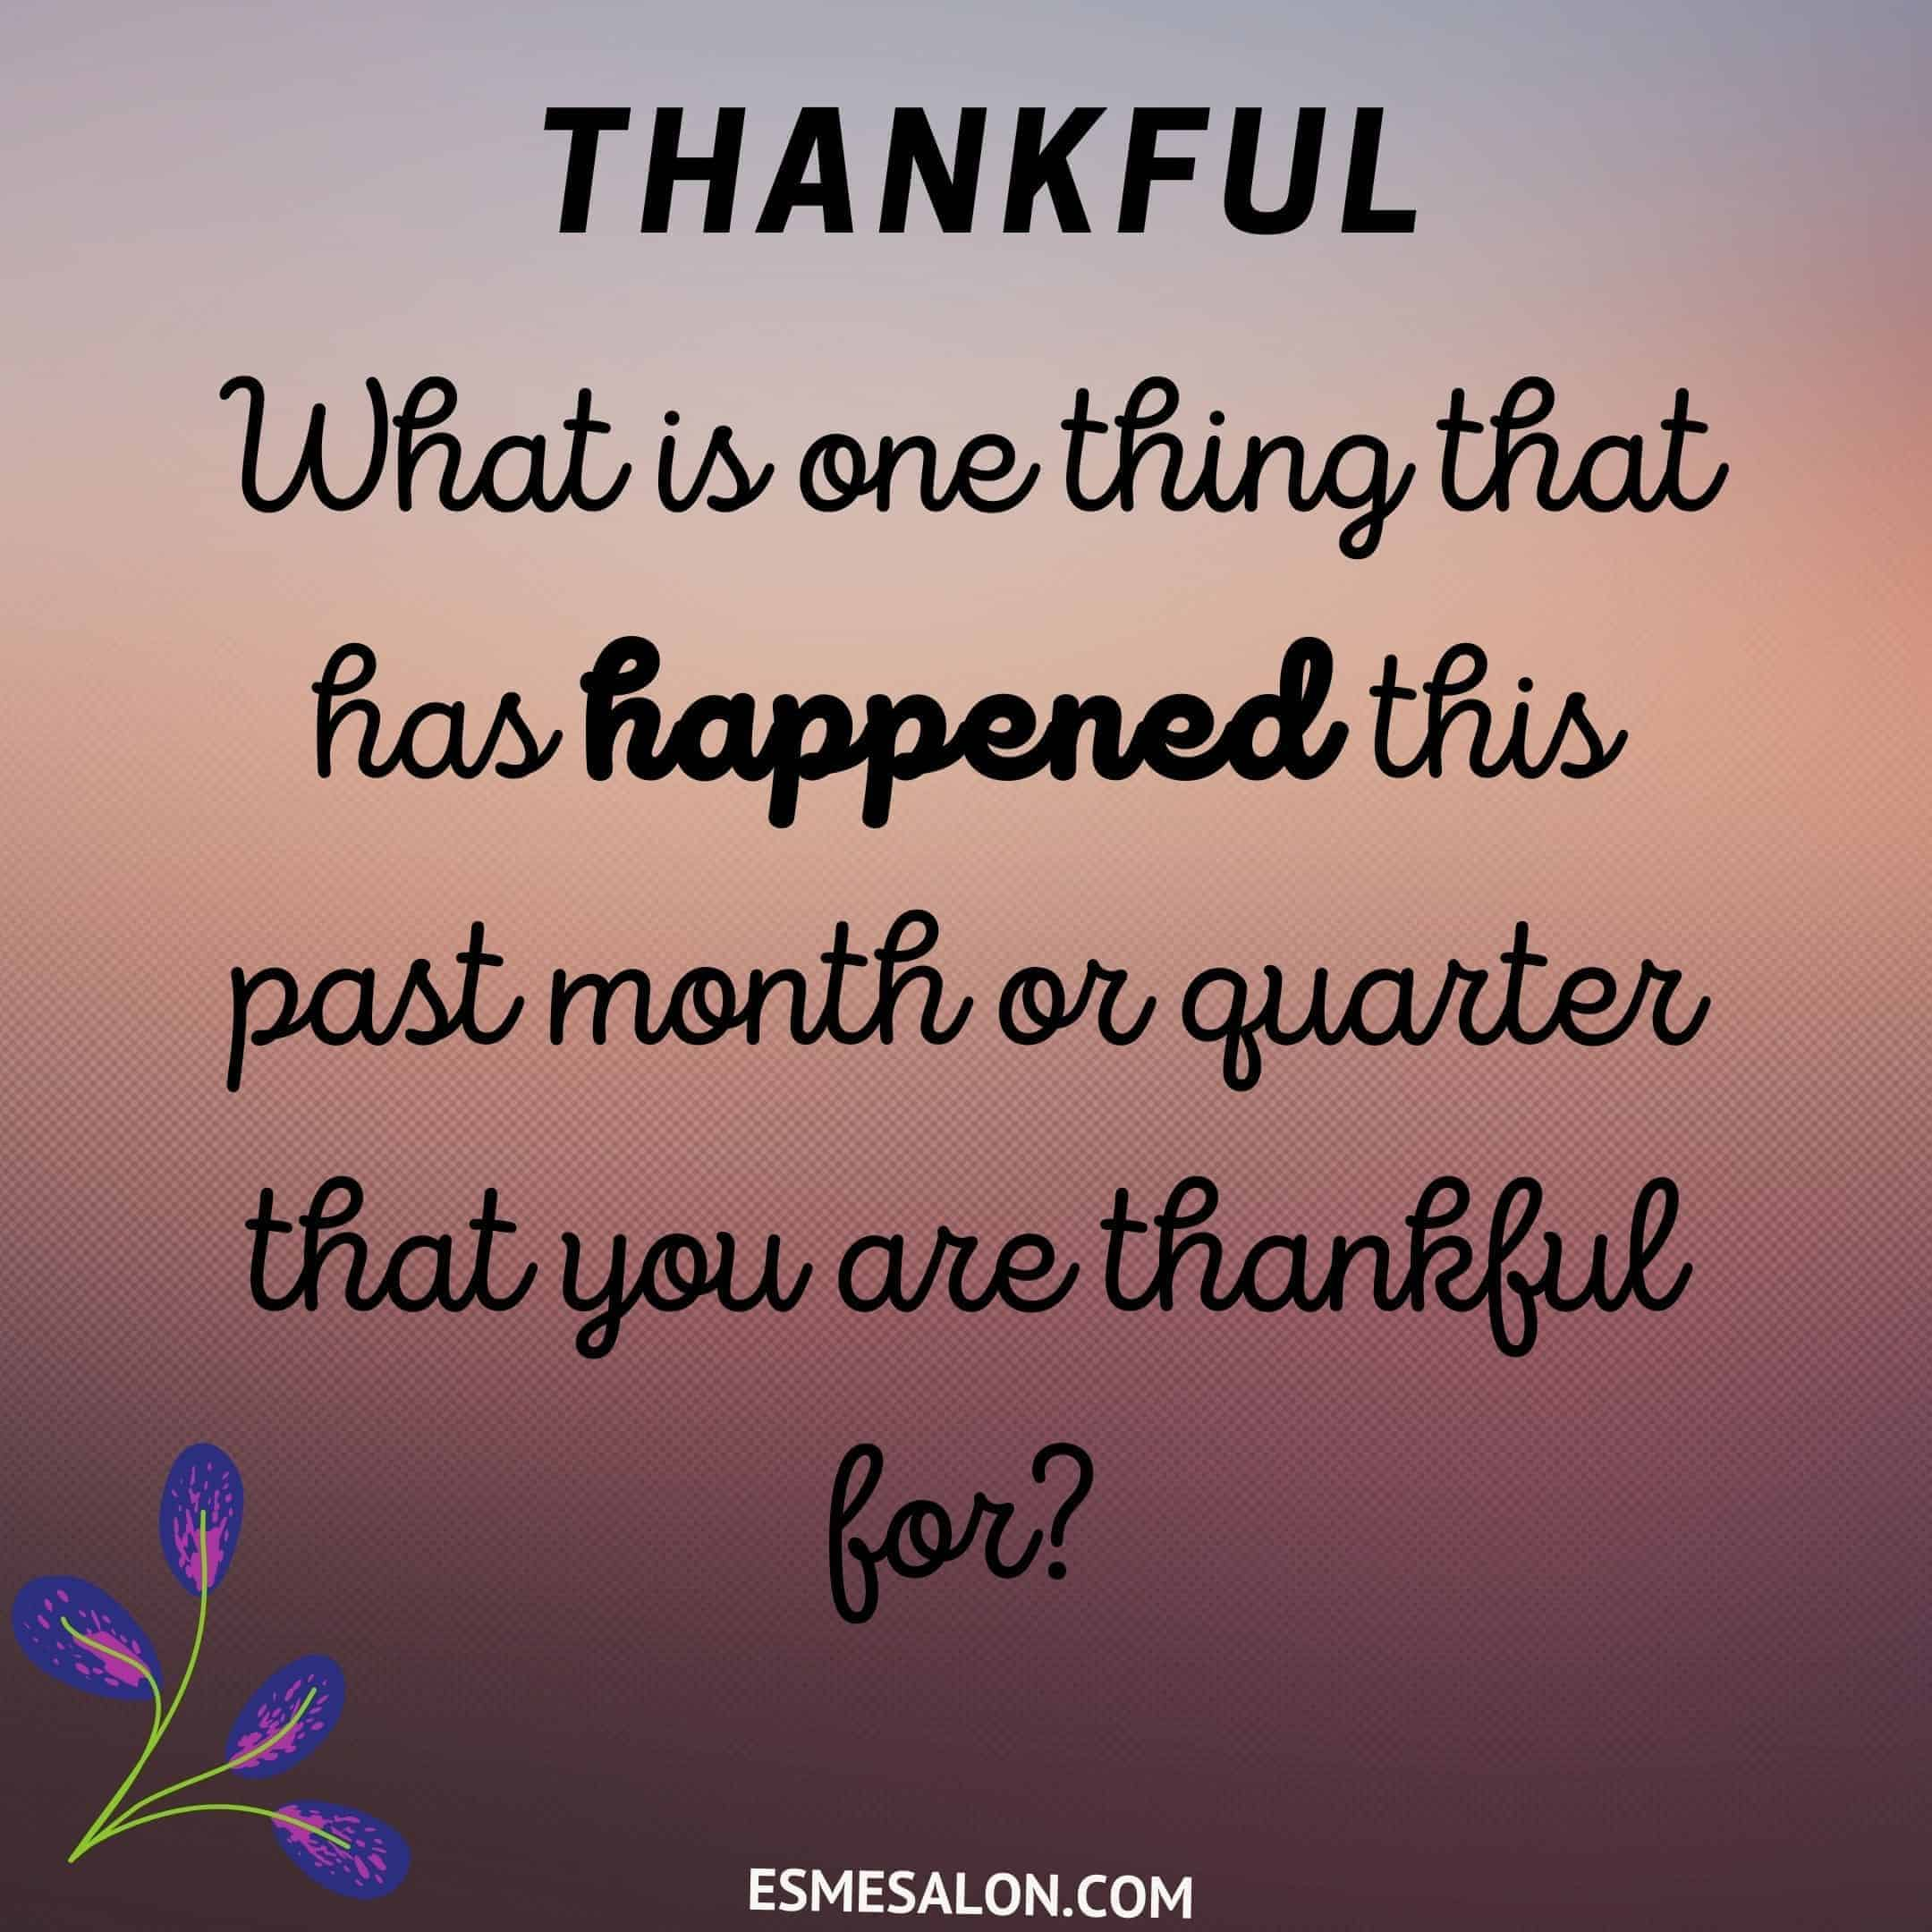 What has happened this past month or quarter that has helped you to grow and for what you are thankful for?